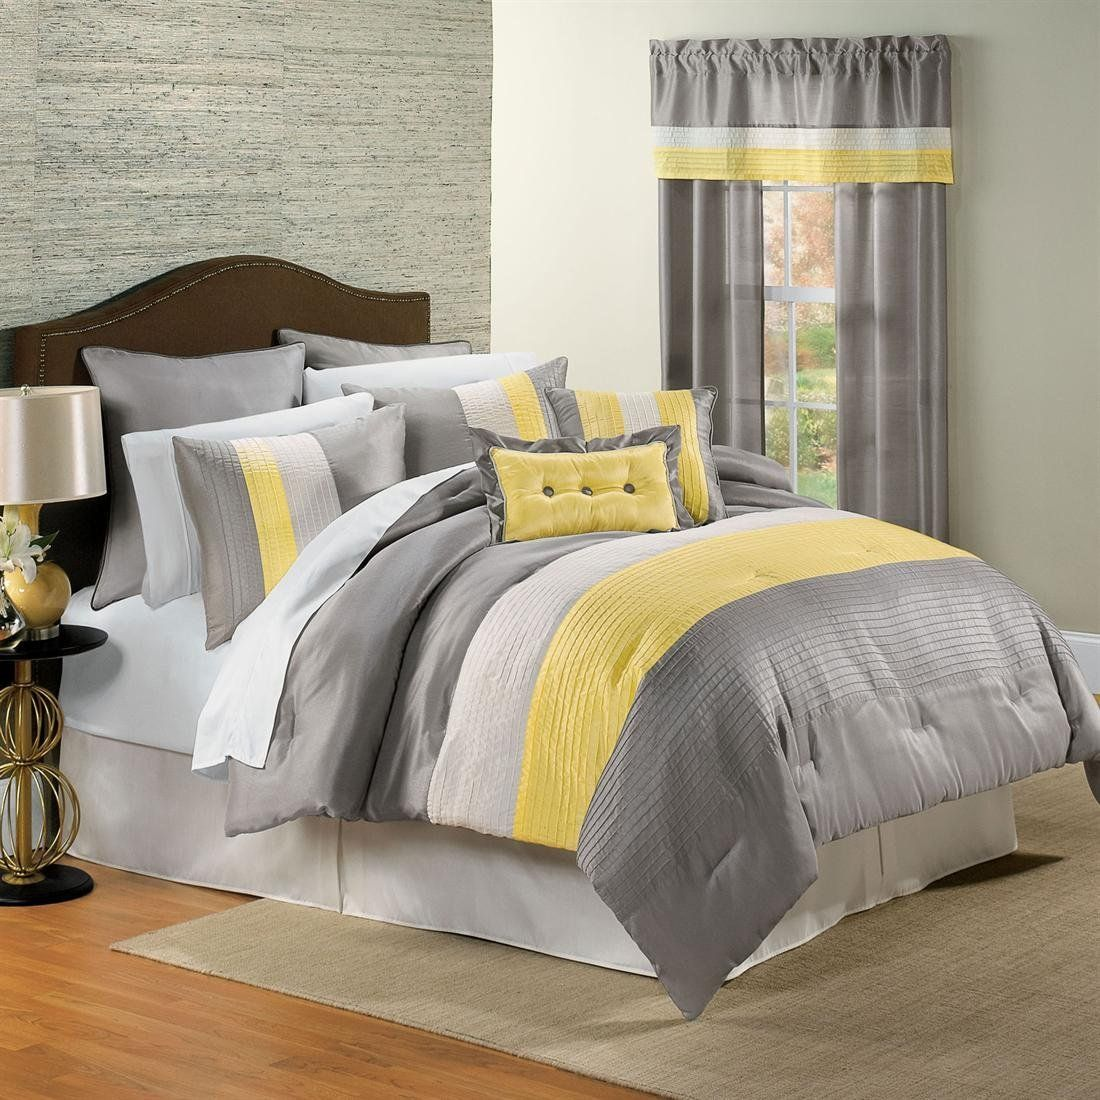 Pale Grey Bedroom Yellow White Grey And Black Bedding I Love This Color